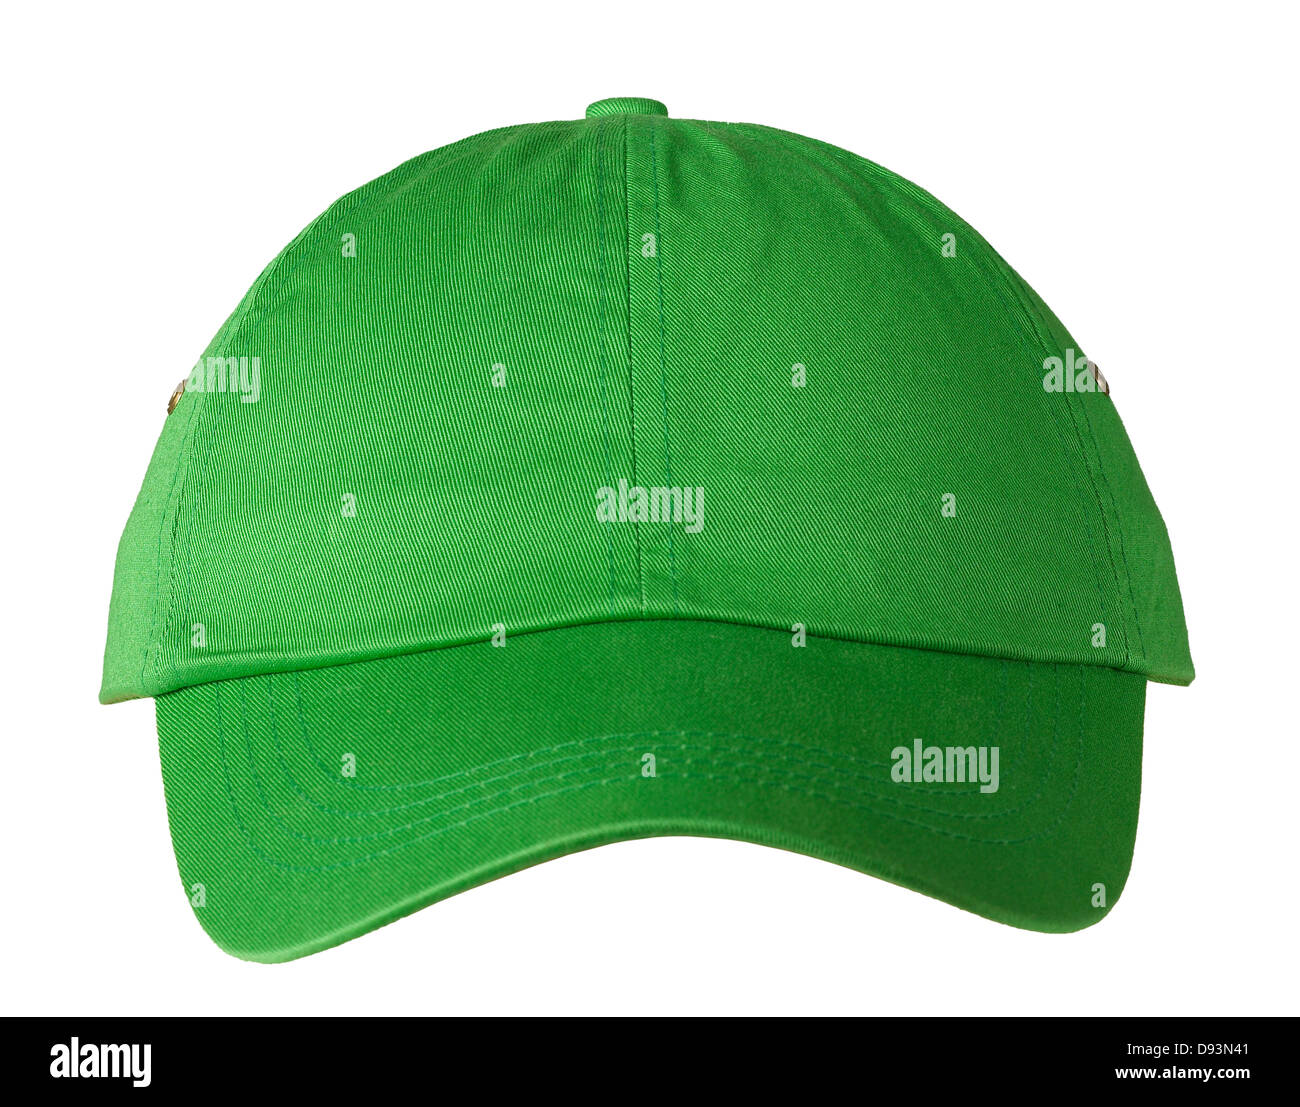 Green Baseball cap on white background - Stock Image